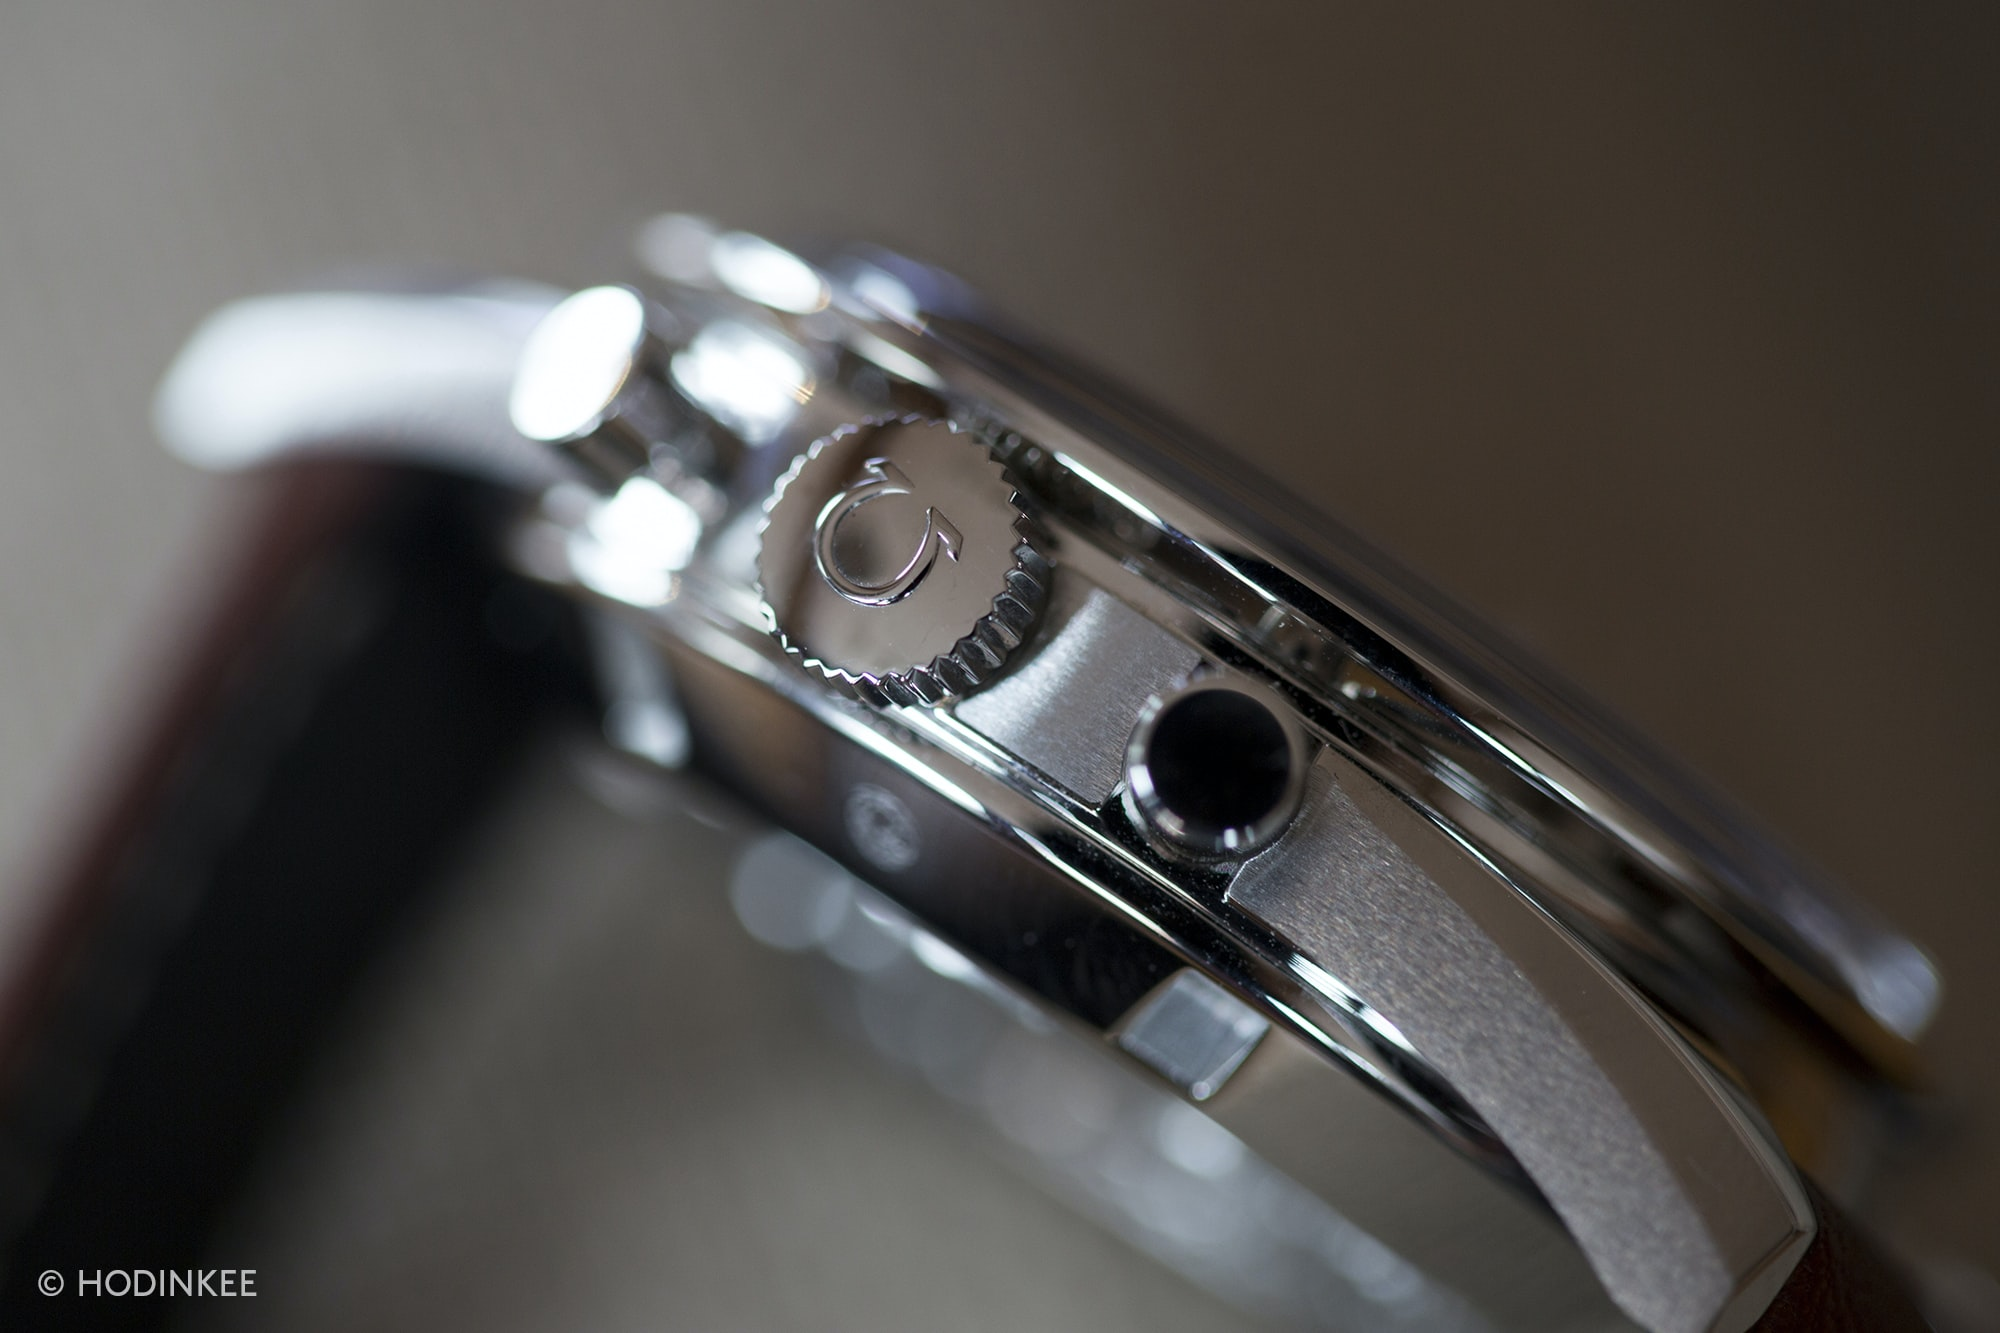 Omega Speedmaster First Omega In Space Crown A Week On The Wrist: The Omega Speedmaster 'First Omega In Space' A Week On The Wrist: The Omega Speedmaster 'First Omega In Space' 588A0196 copy